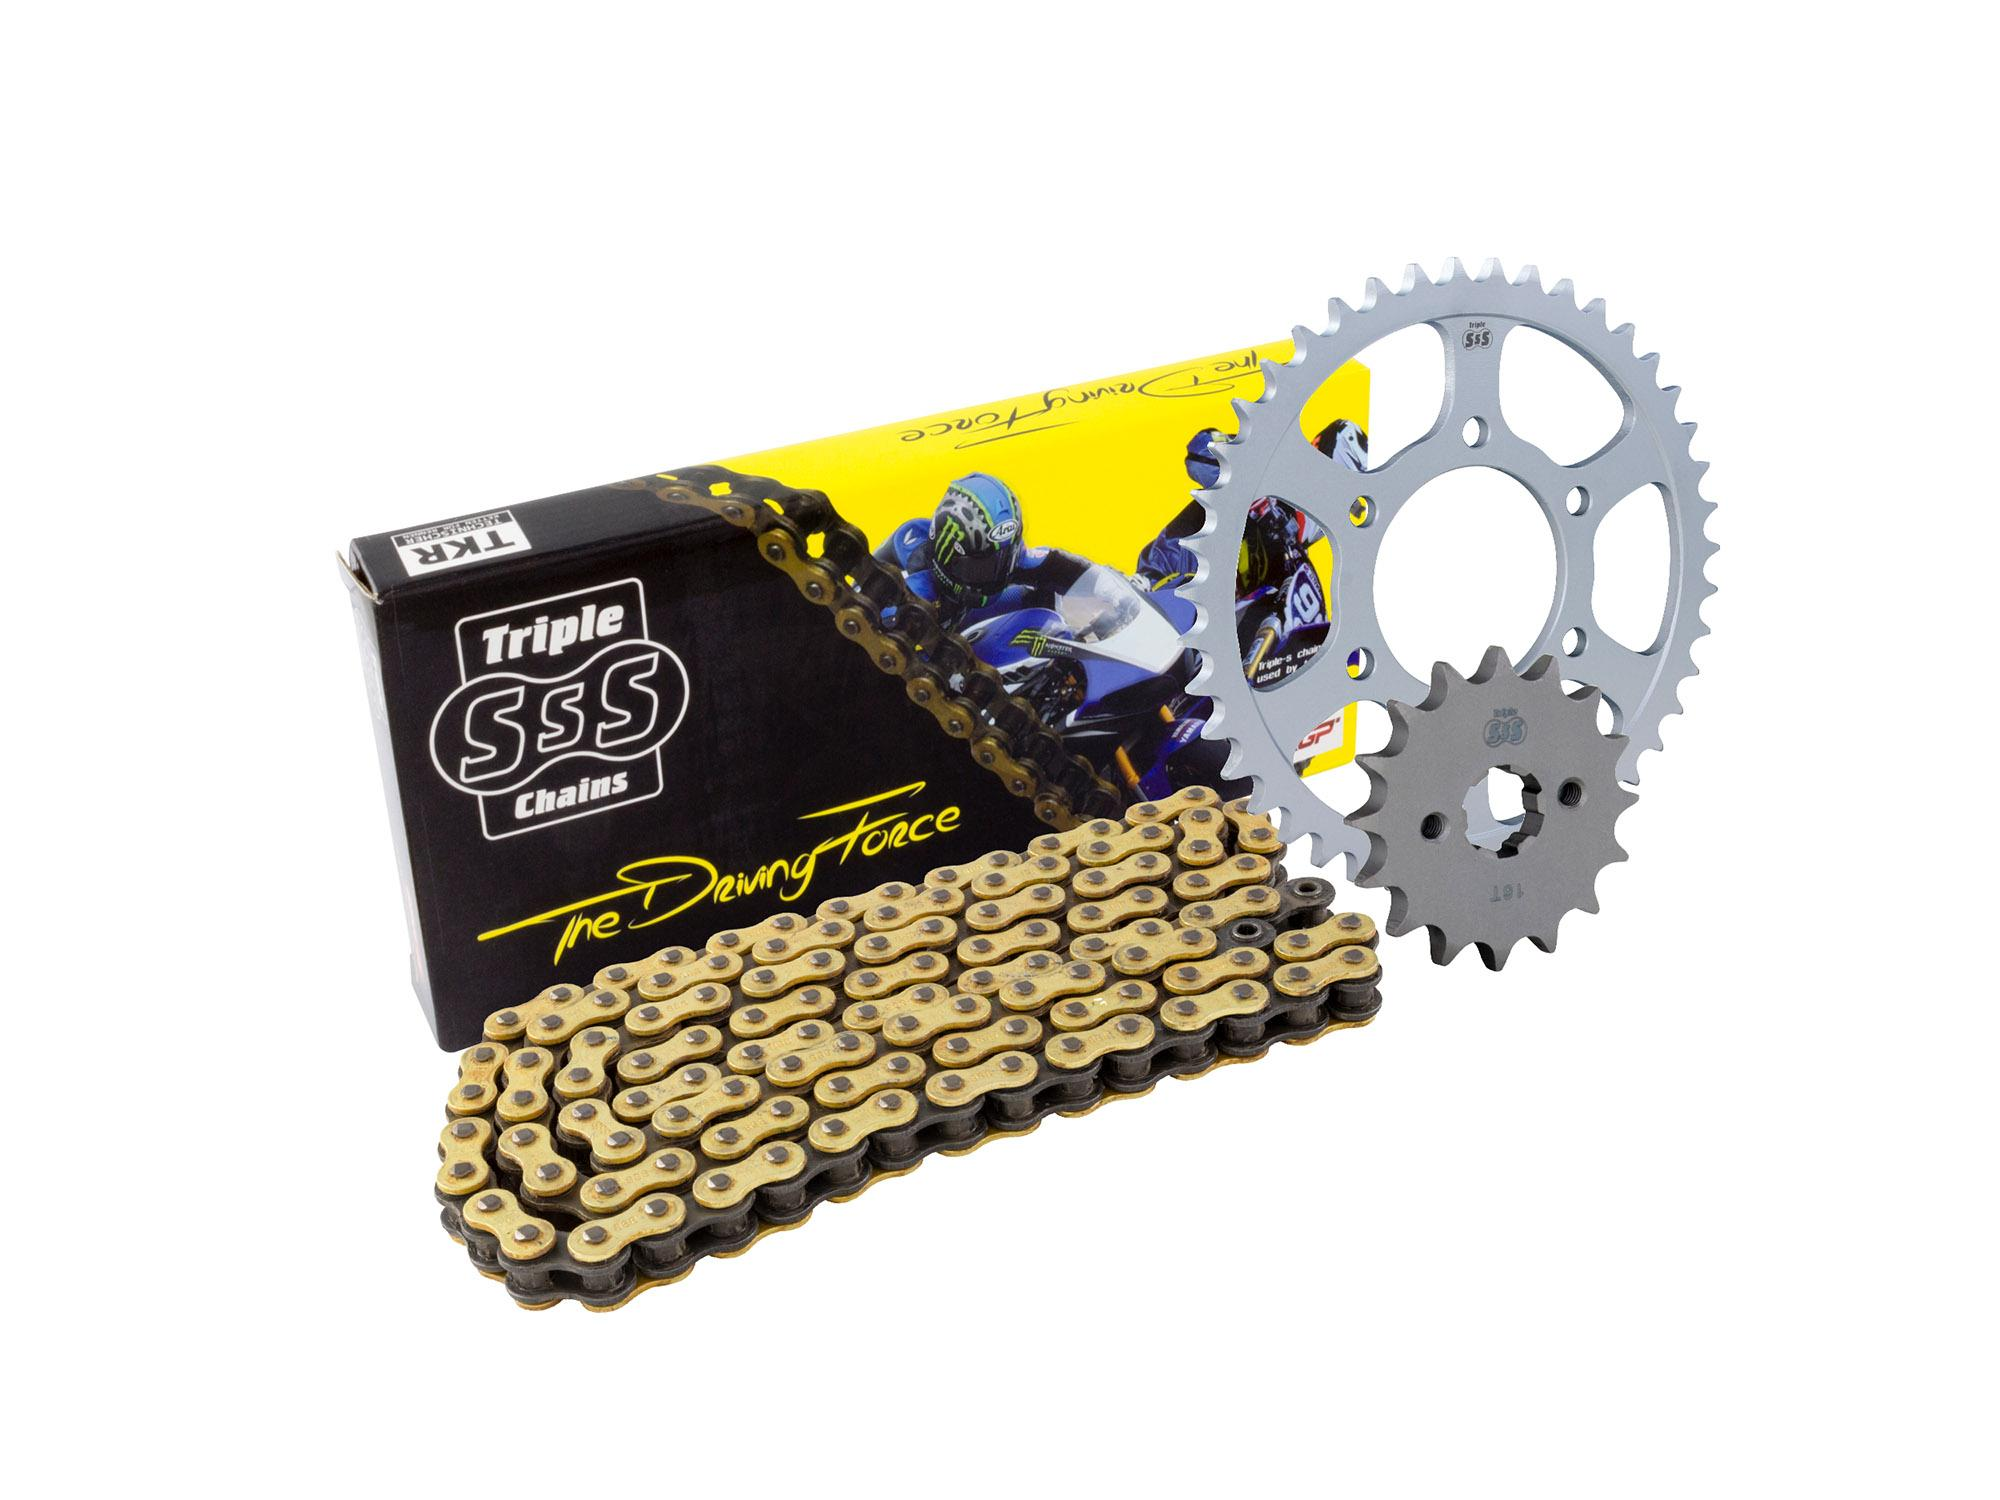 Honda VFR800 X-C 12> Chain & Sprocket Kit: 16T Front, 43T Rear, HD O-Ring Gold Chain 530H 116Link